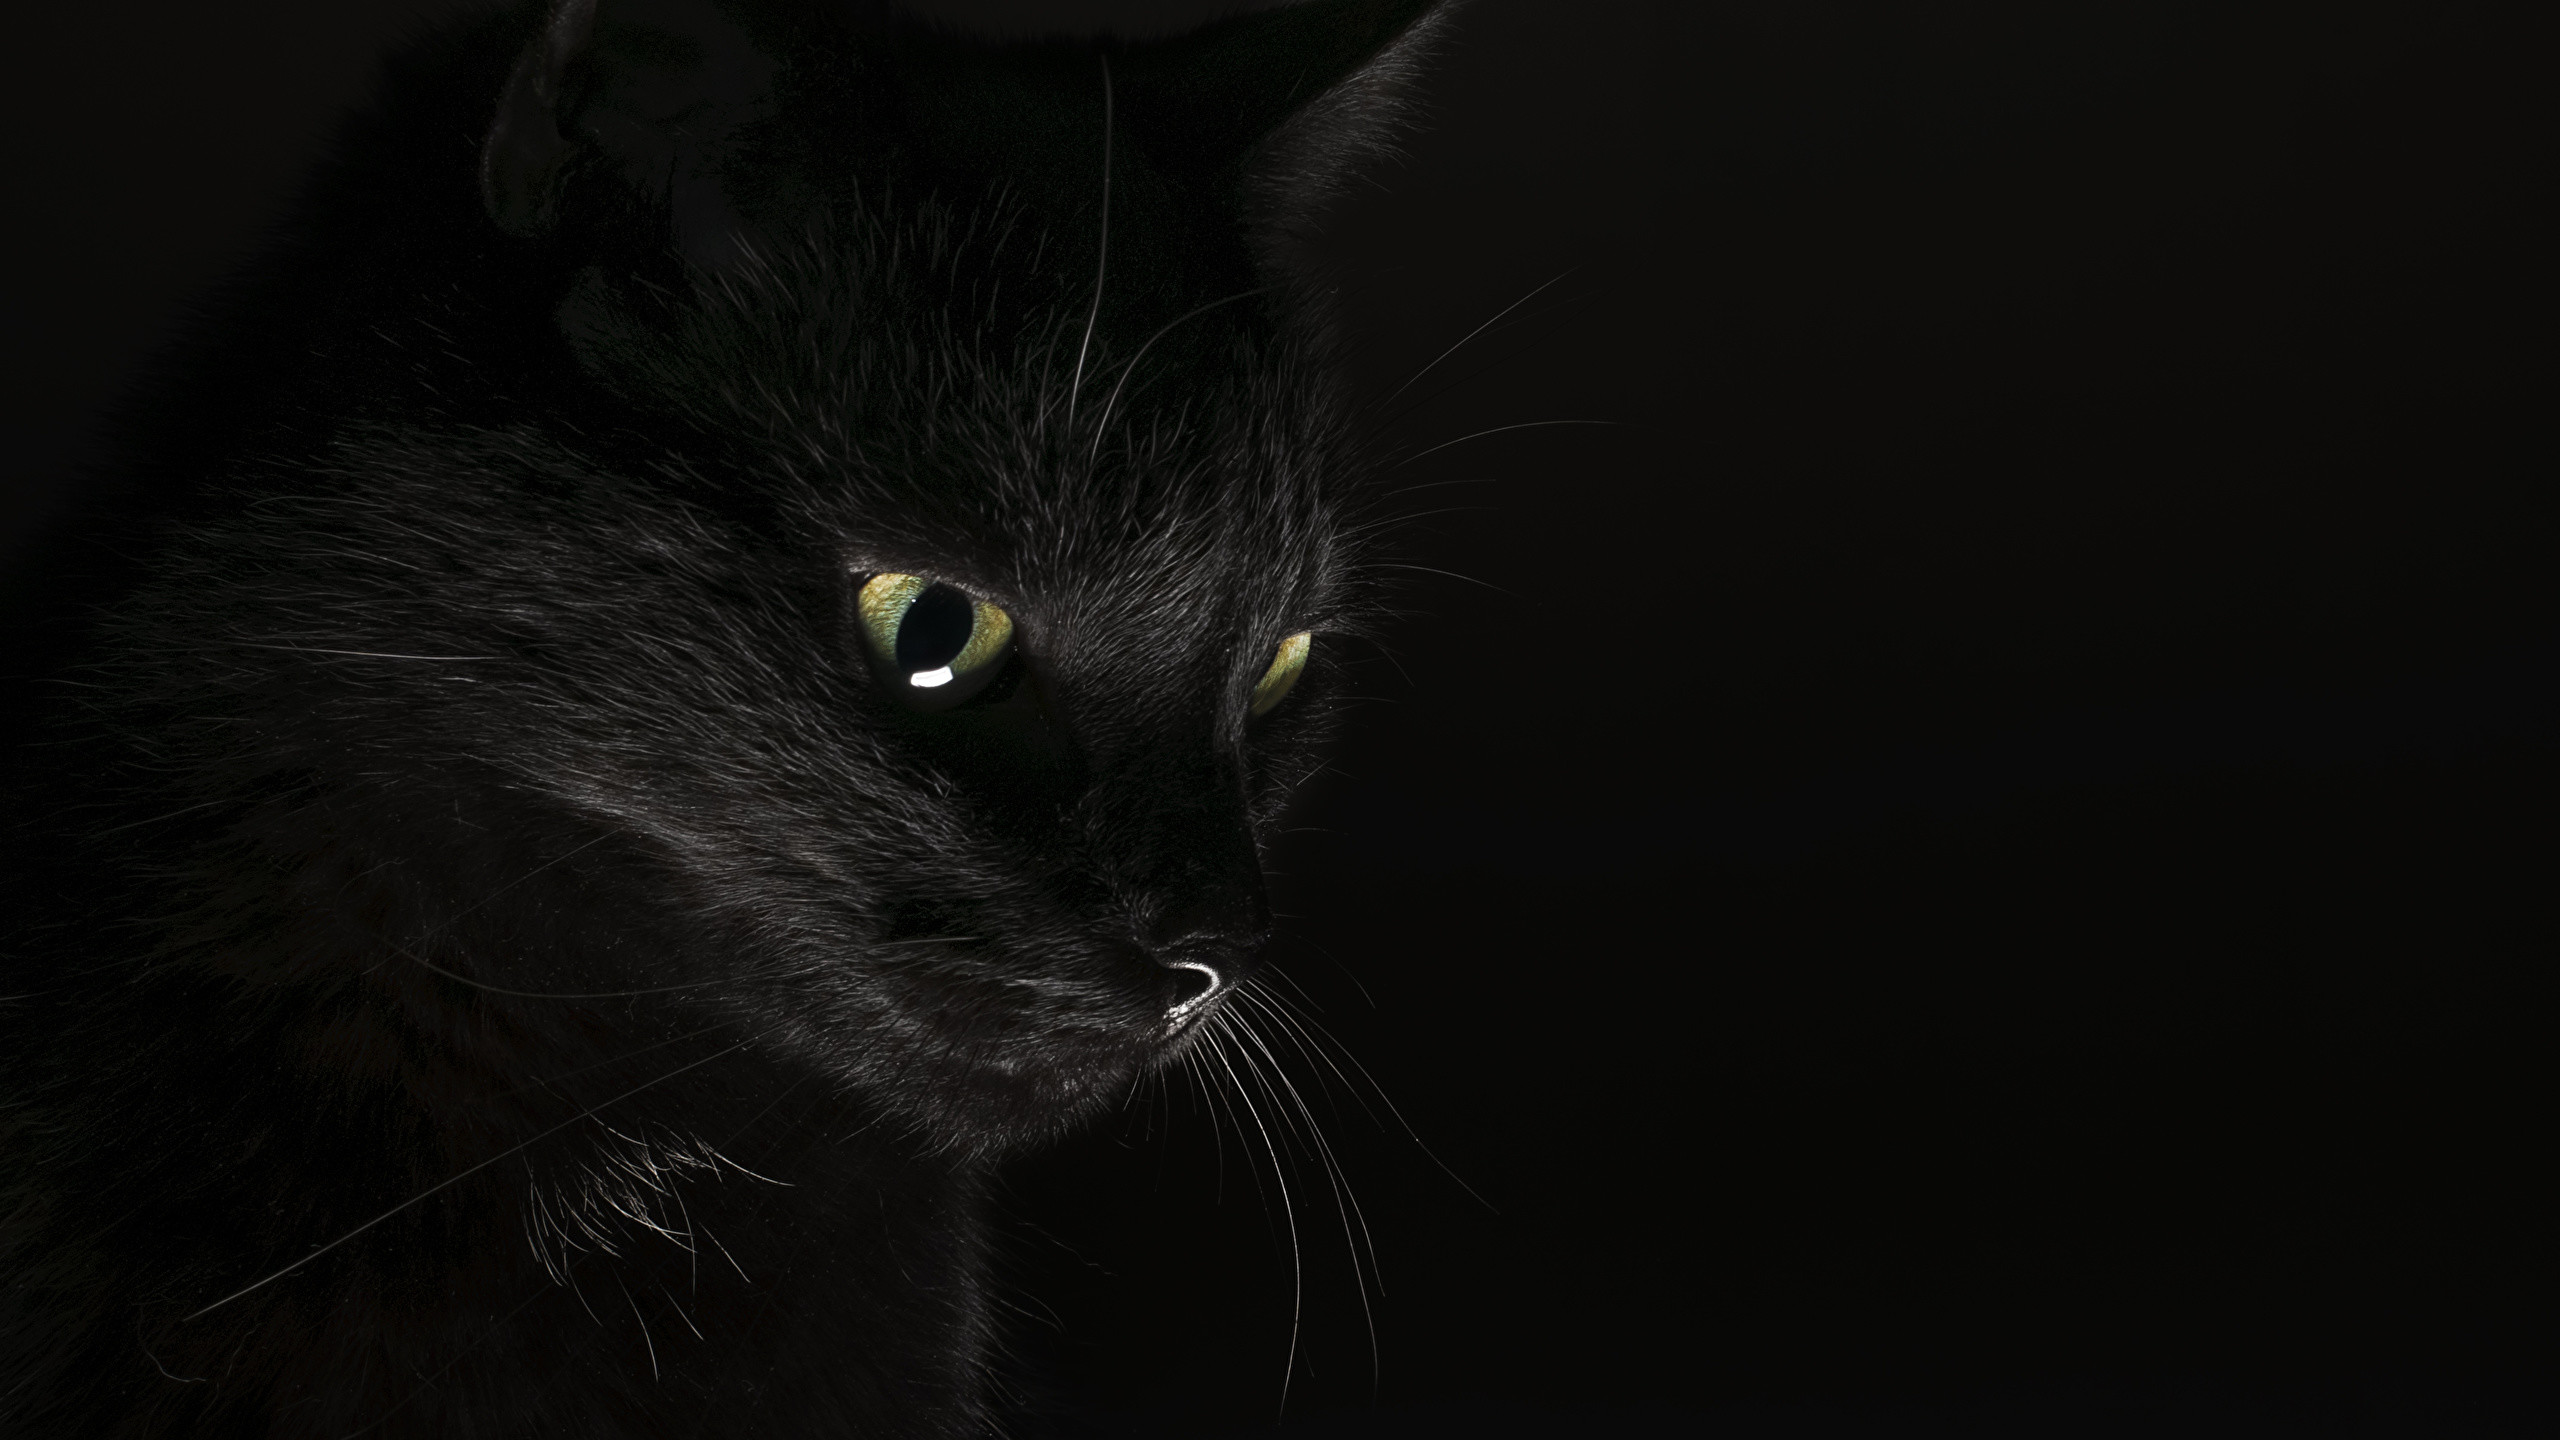 Picture Cats Black Animals Black background 2560×1440